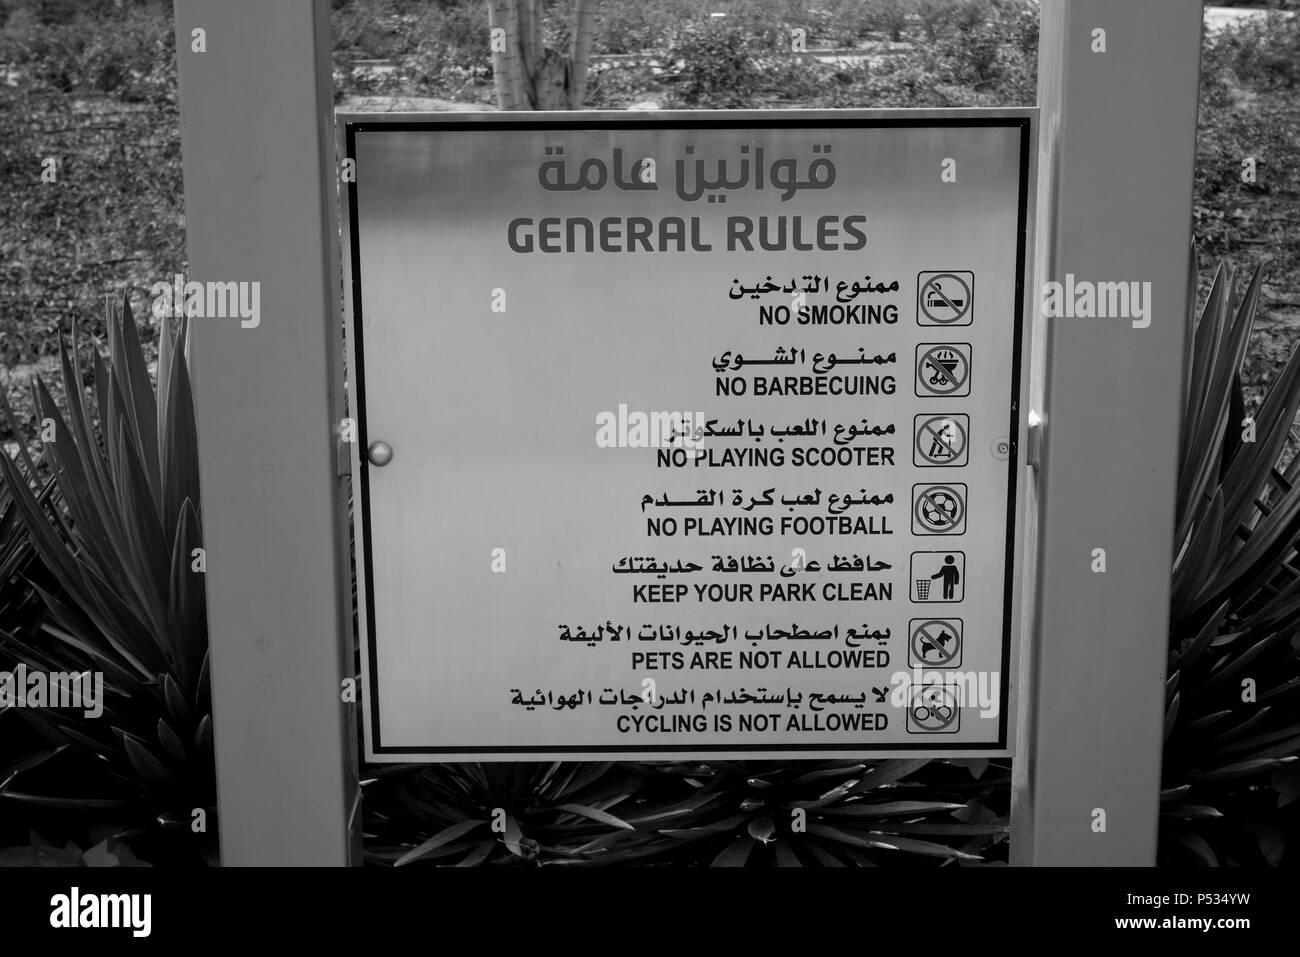 List of Park rules and regulations in English and Arabic displayed in a public park, Kuwait City, Kuwait, Arabian Gulf, Middle East - Stock Image